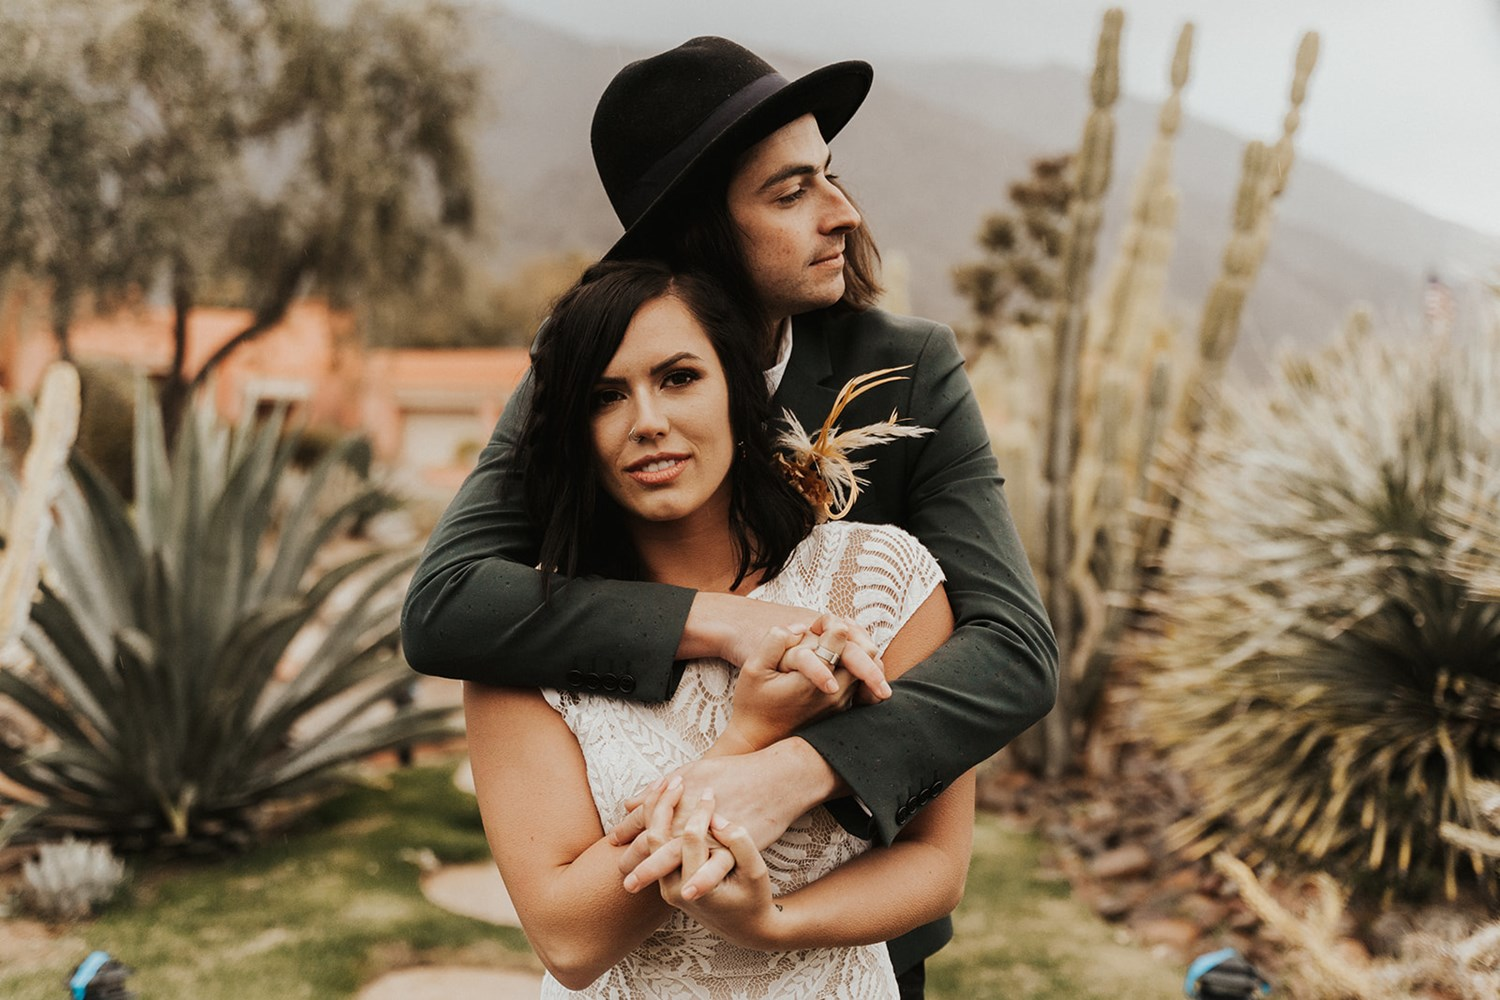 desertshootout_cait_cophoto-0120.jpg Bohemian Palm Springs Wedding Inspiration with a Modern Twist